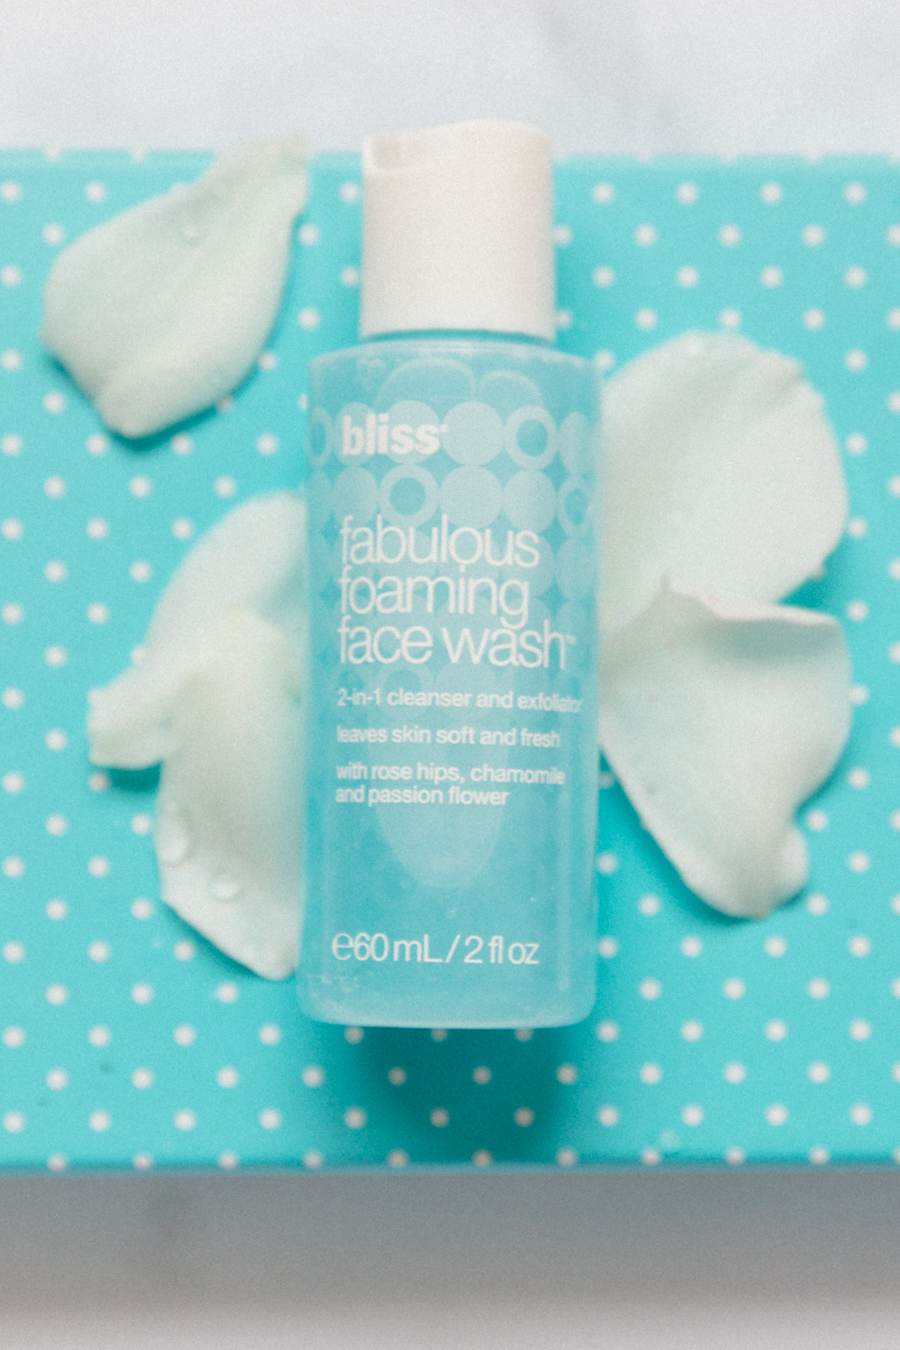 Bliss fabulous farming face wash review.